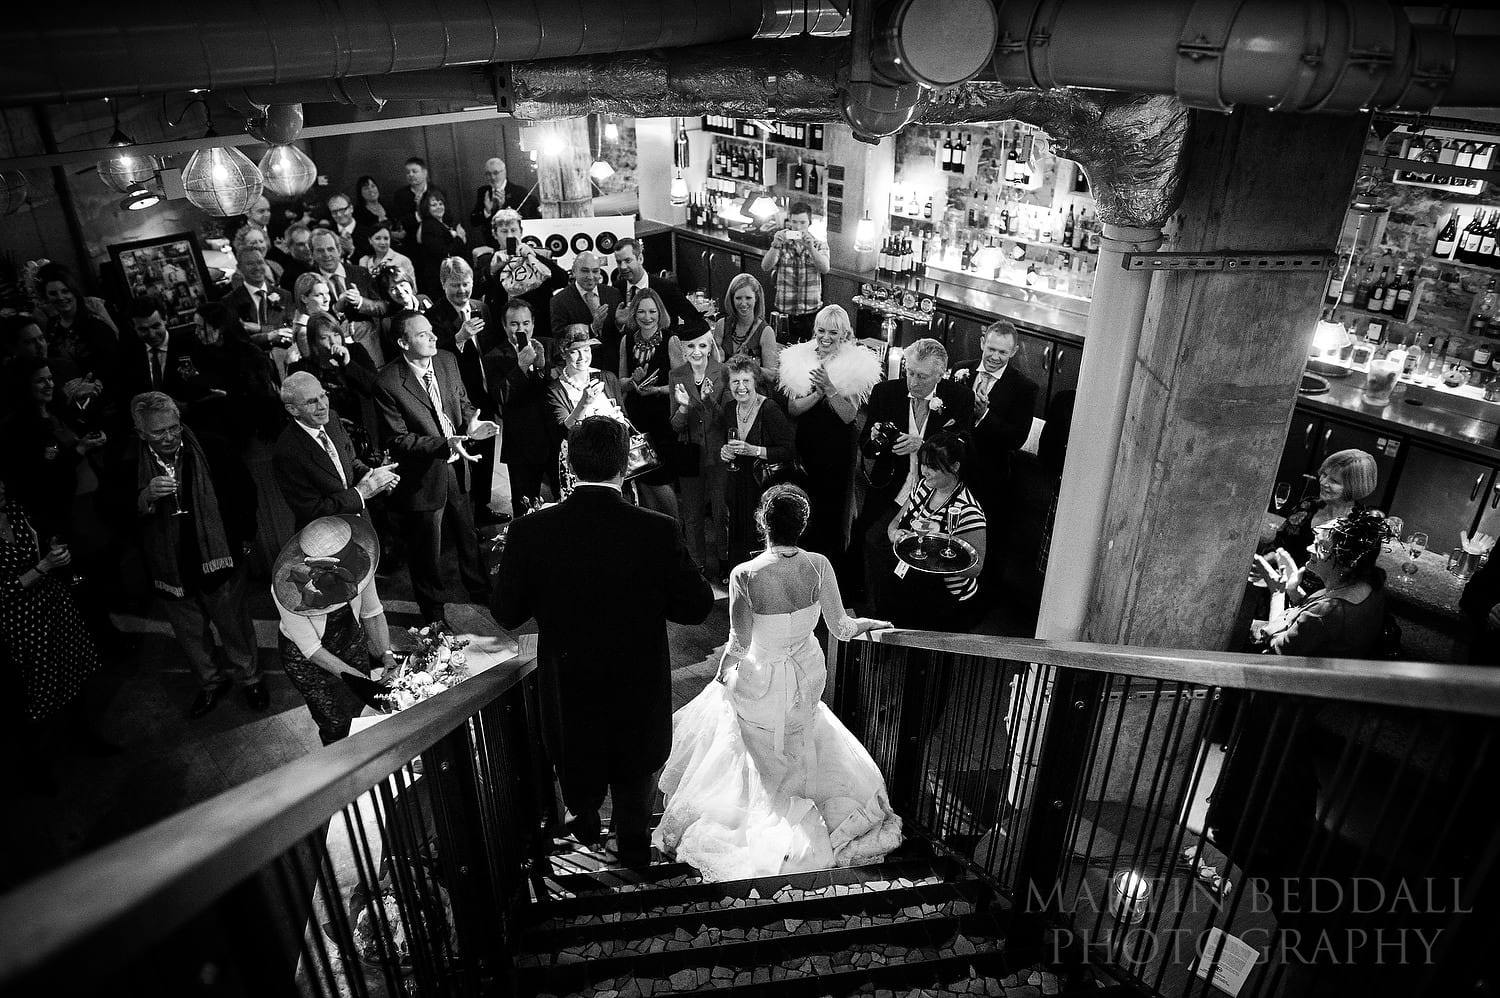 Bride and groom arrive for their wedding reception at the Folly Bar